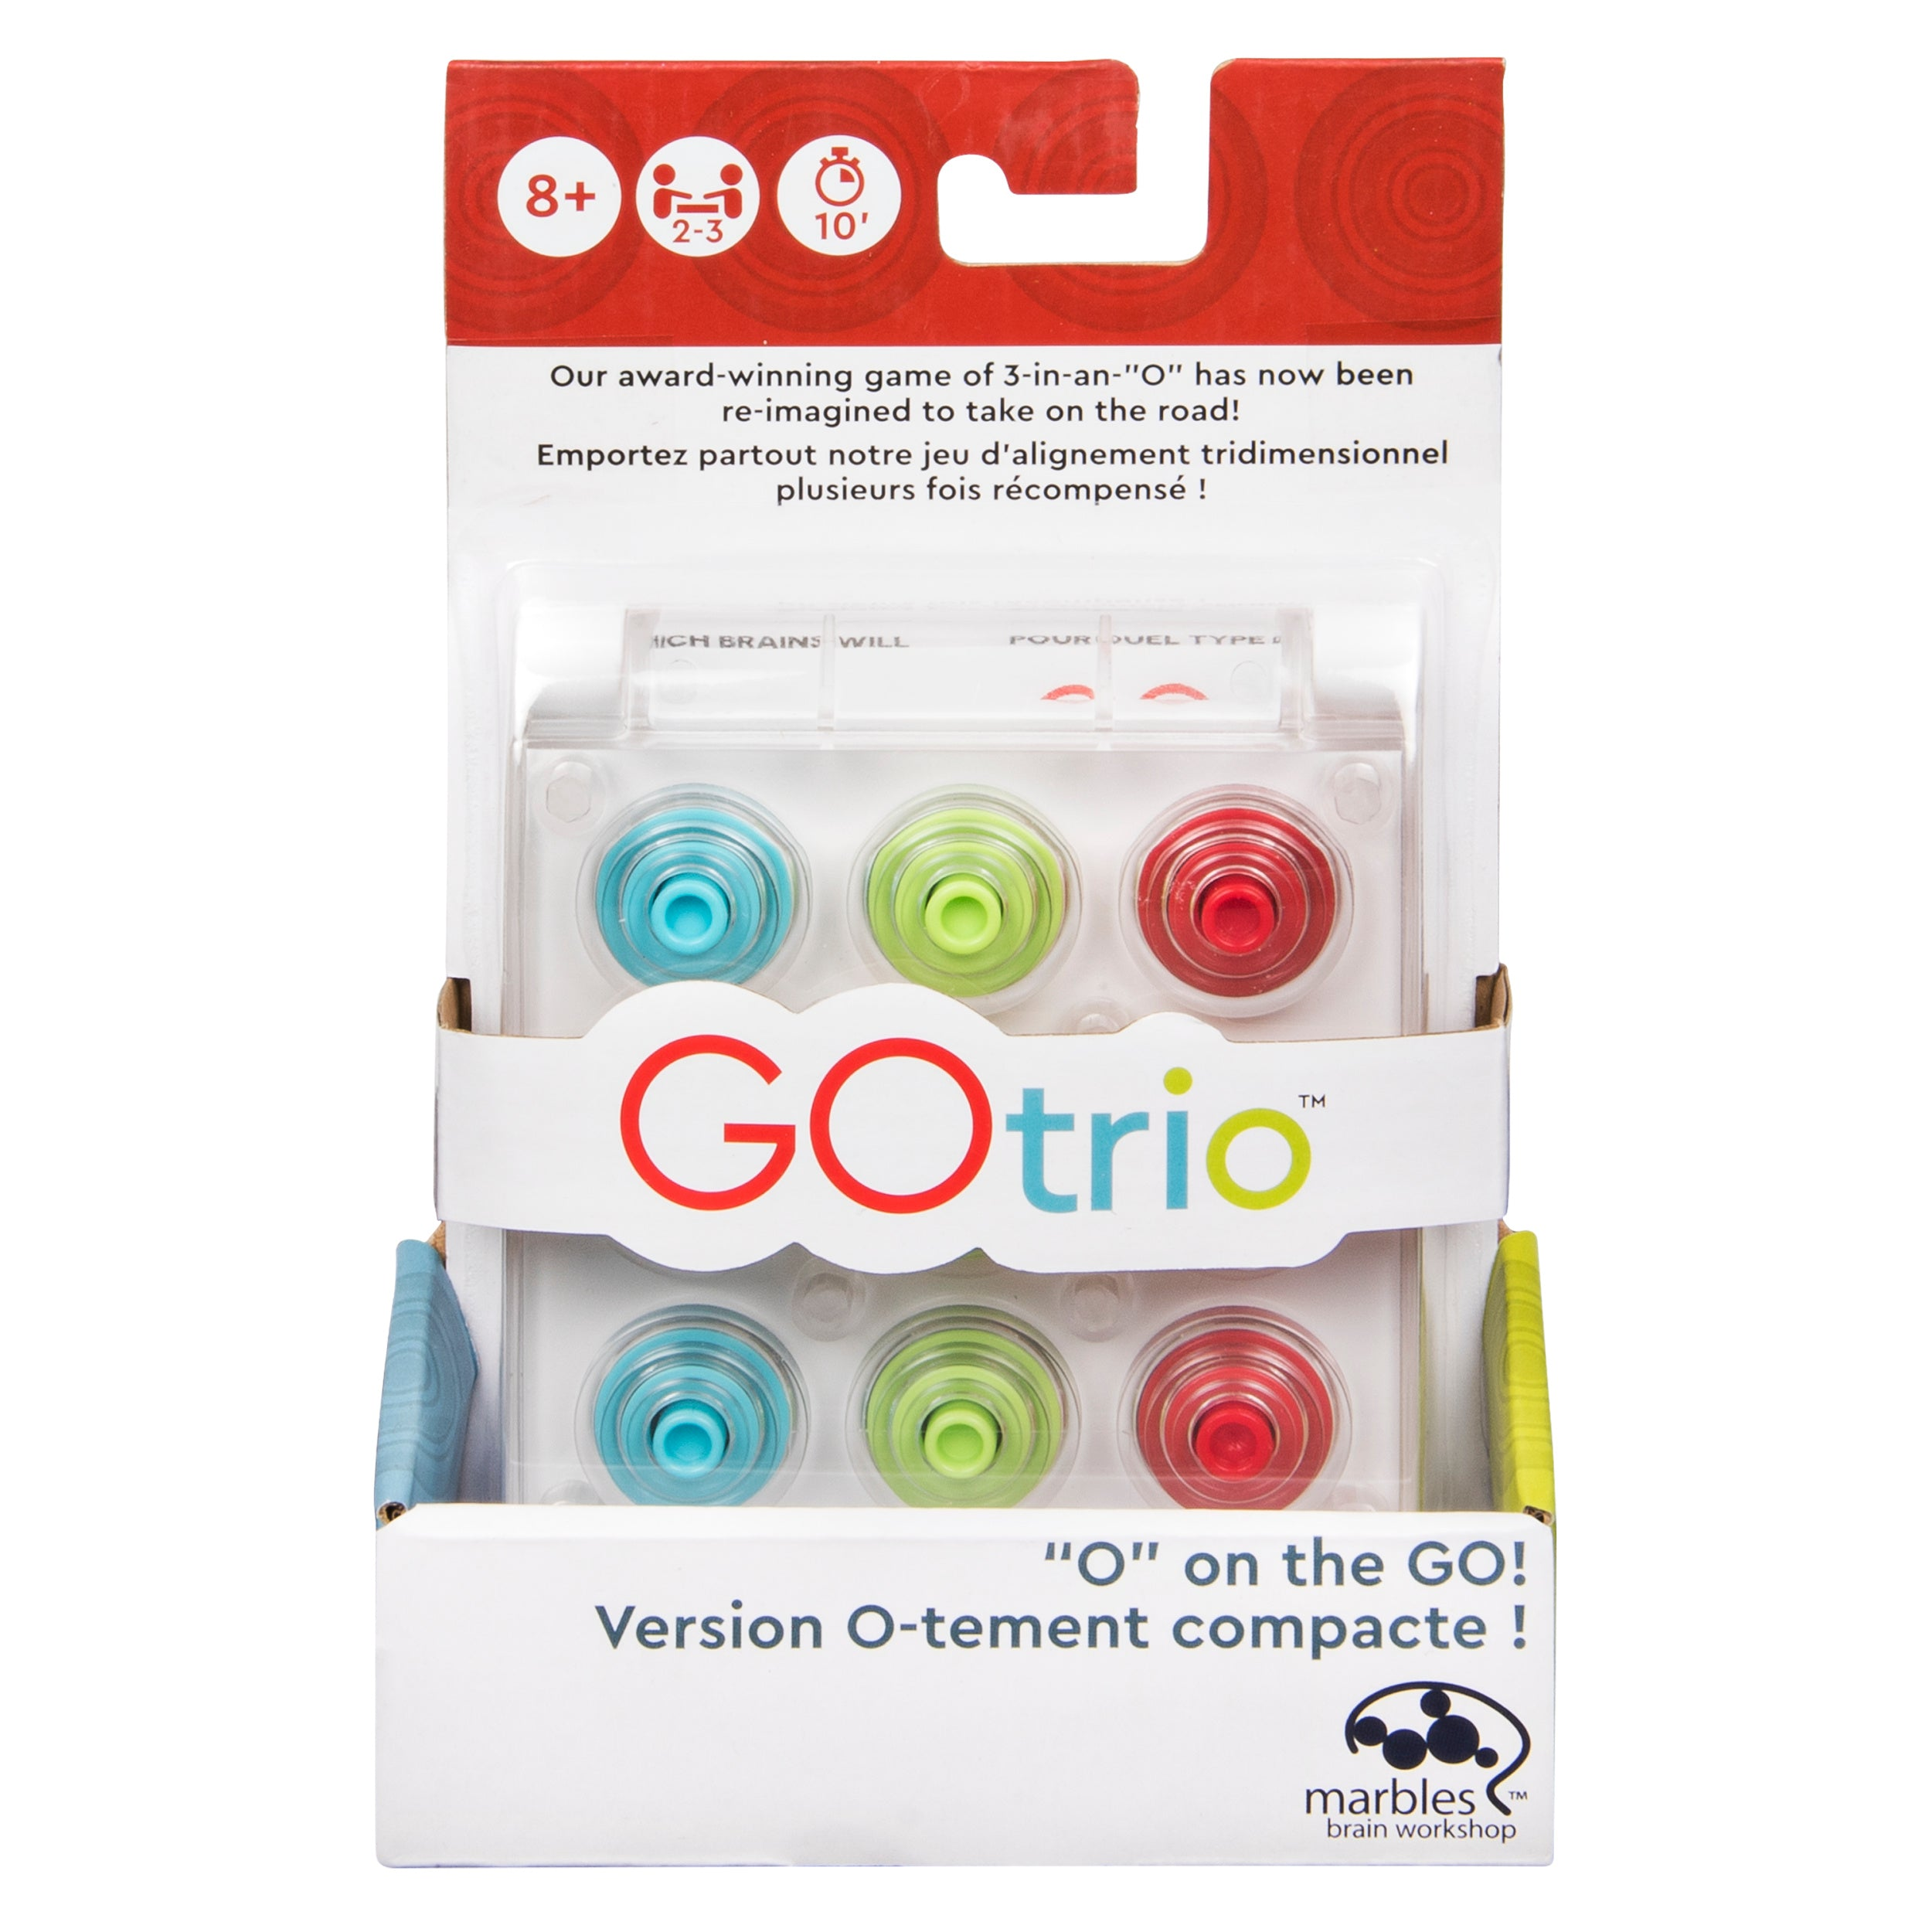 Gotrio Front Package Art.Jpeg